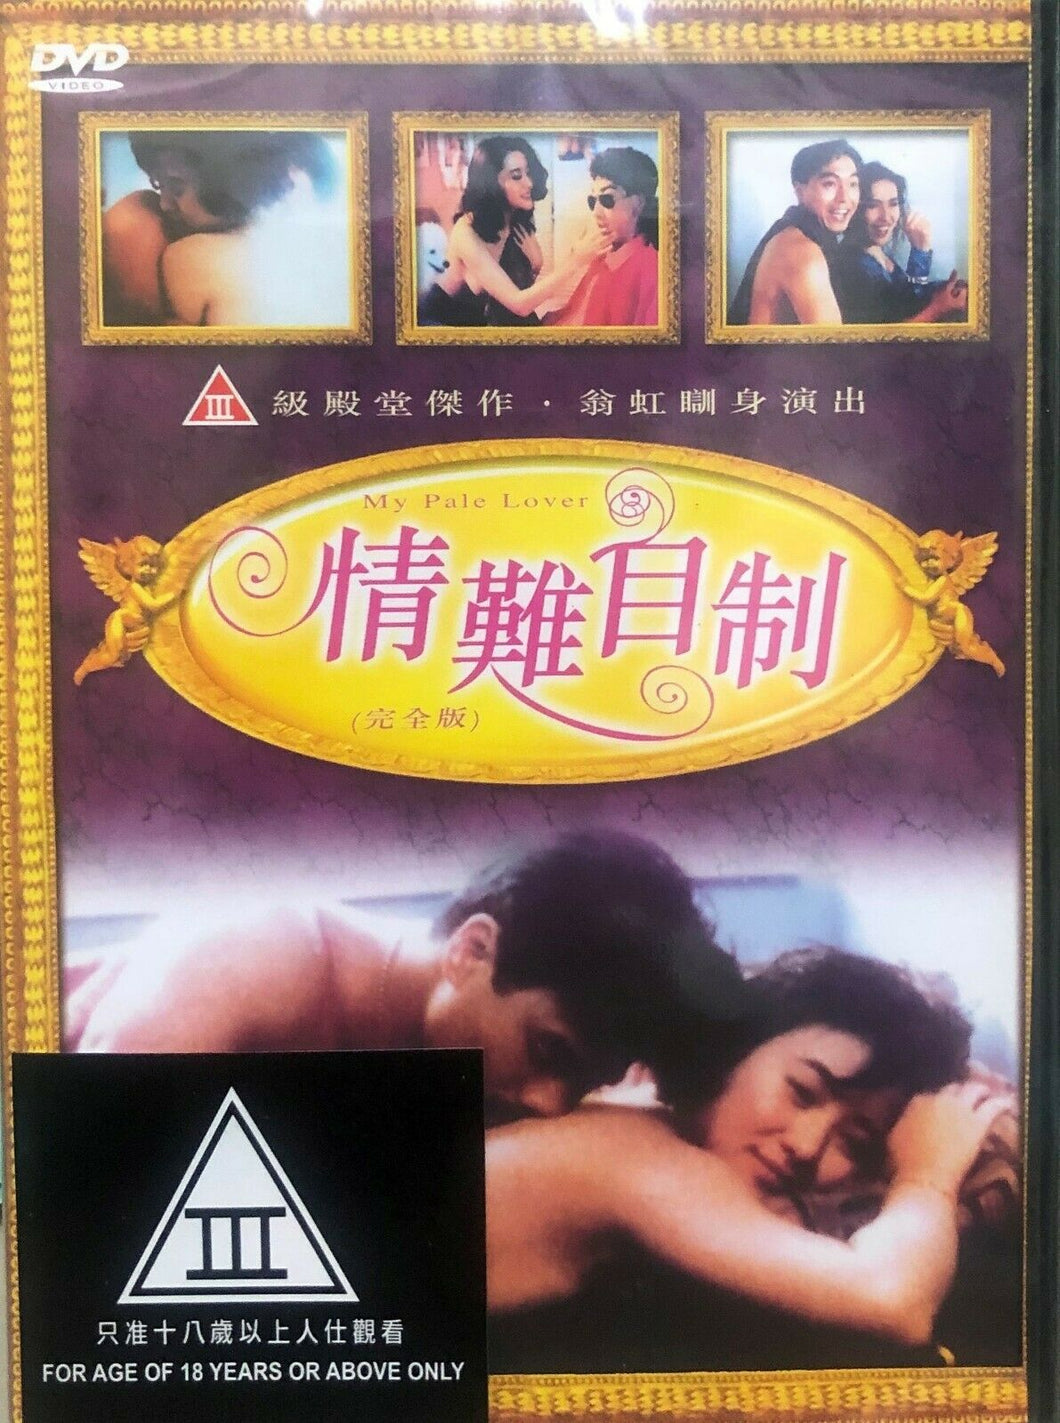 MY PALE LOVER 情難自制 1993 (H.K MOVIE) DVD ENGLISH SUBTITLES (REGION FREE)